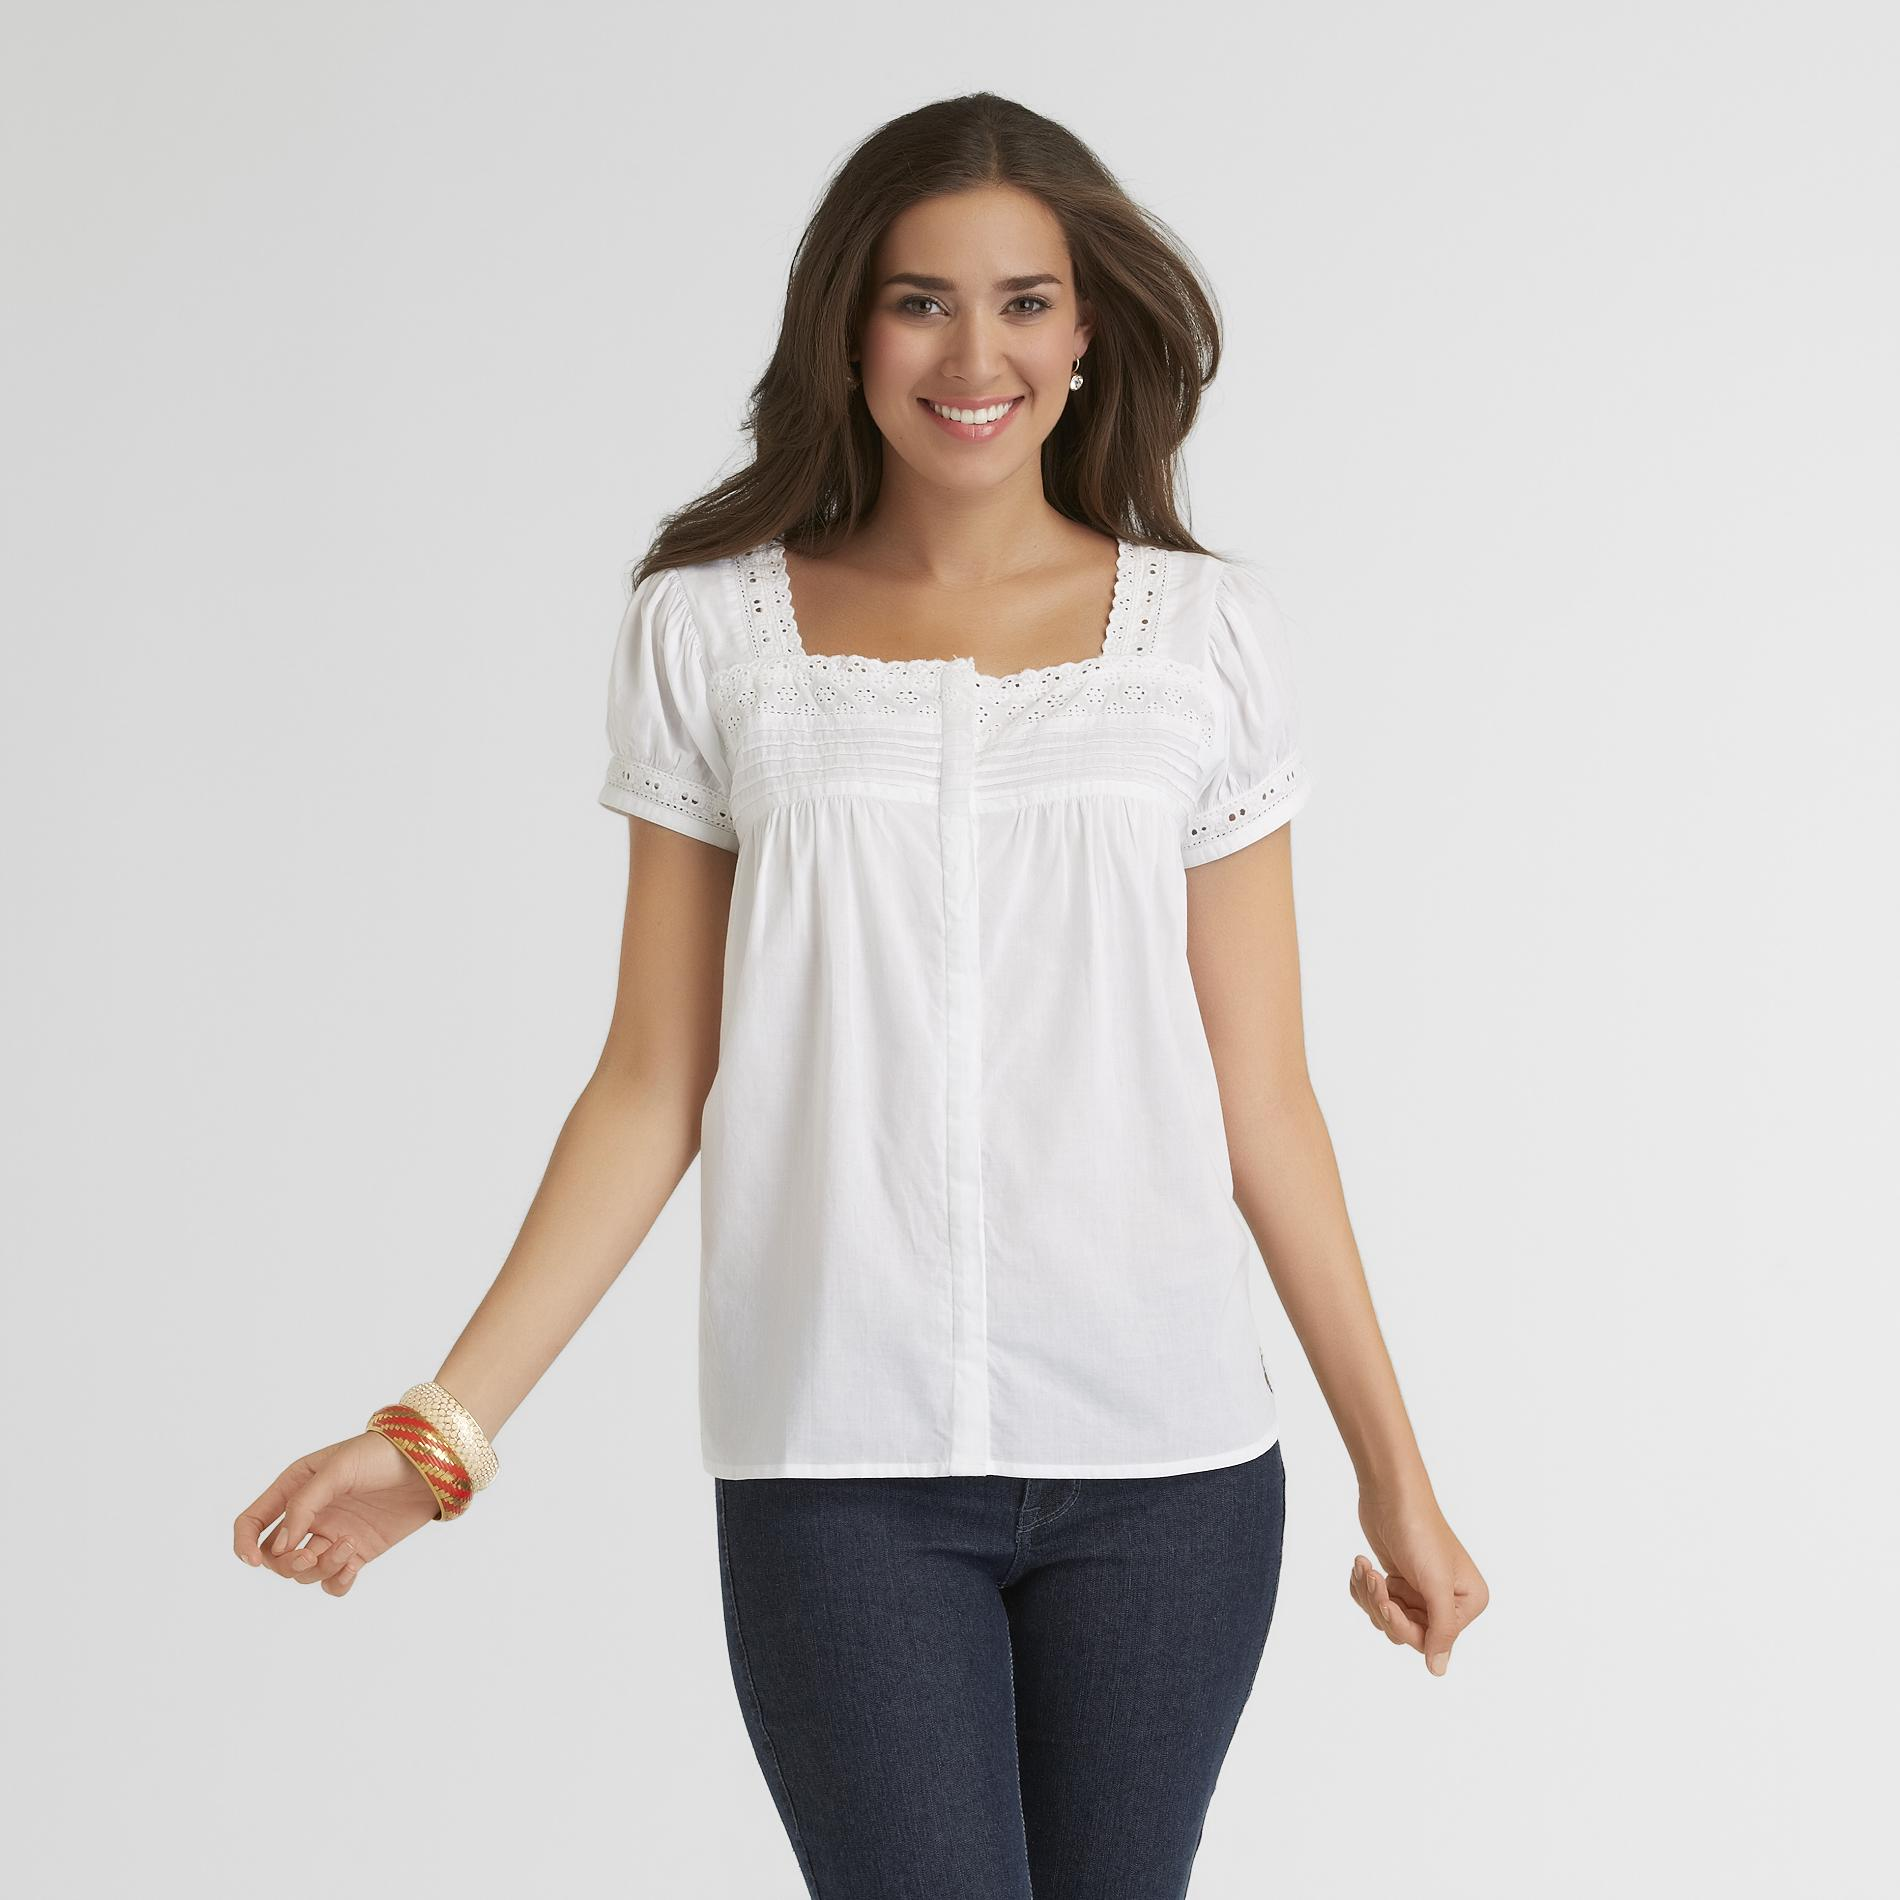 US Polo Assn. Women's Peasant Blouse - Eyelet at Sears.com